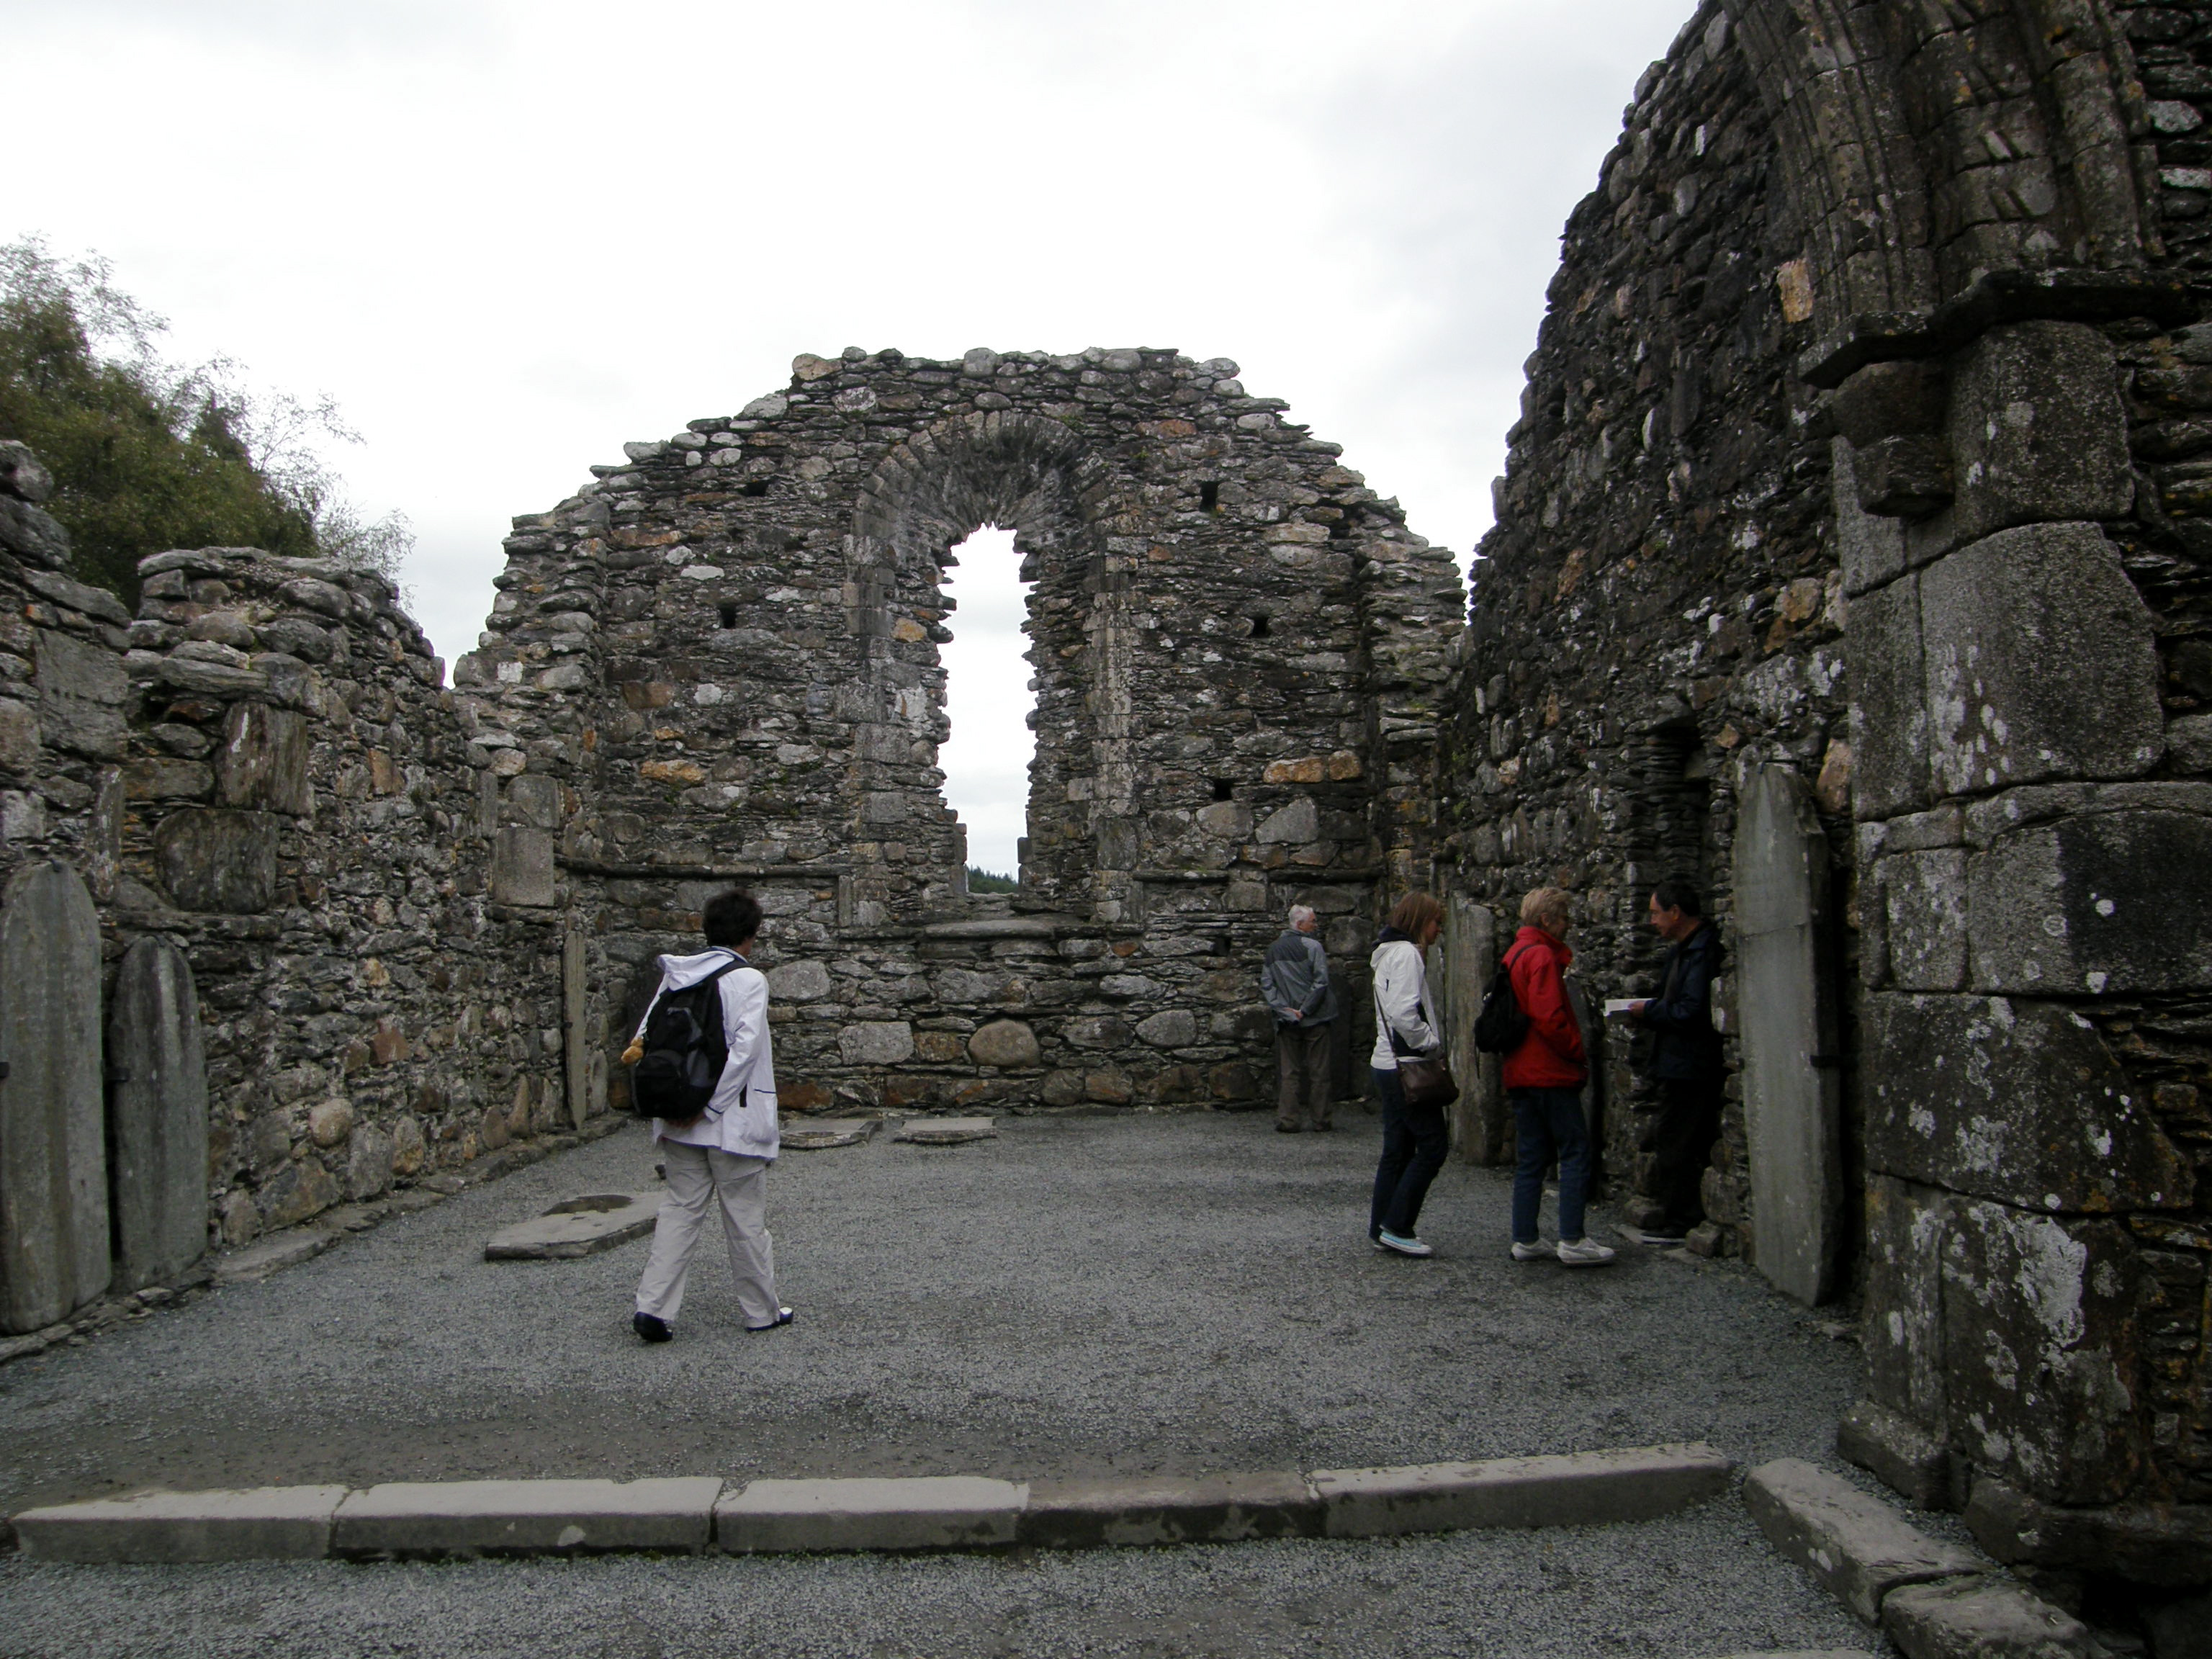 Interior of the Glendalough Cathedral